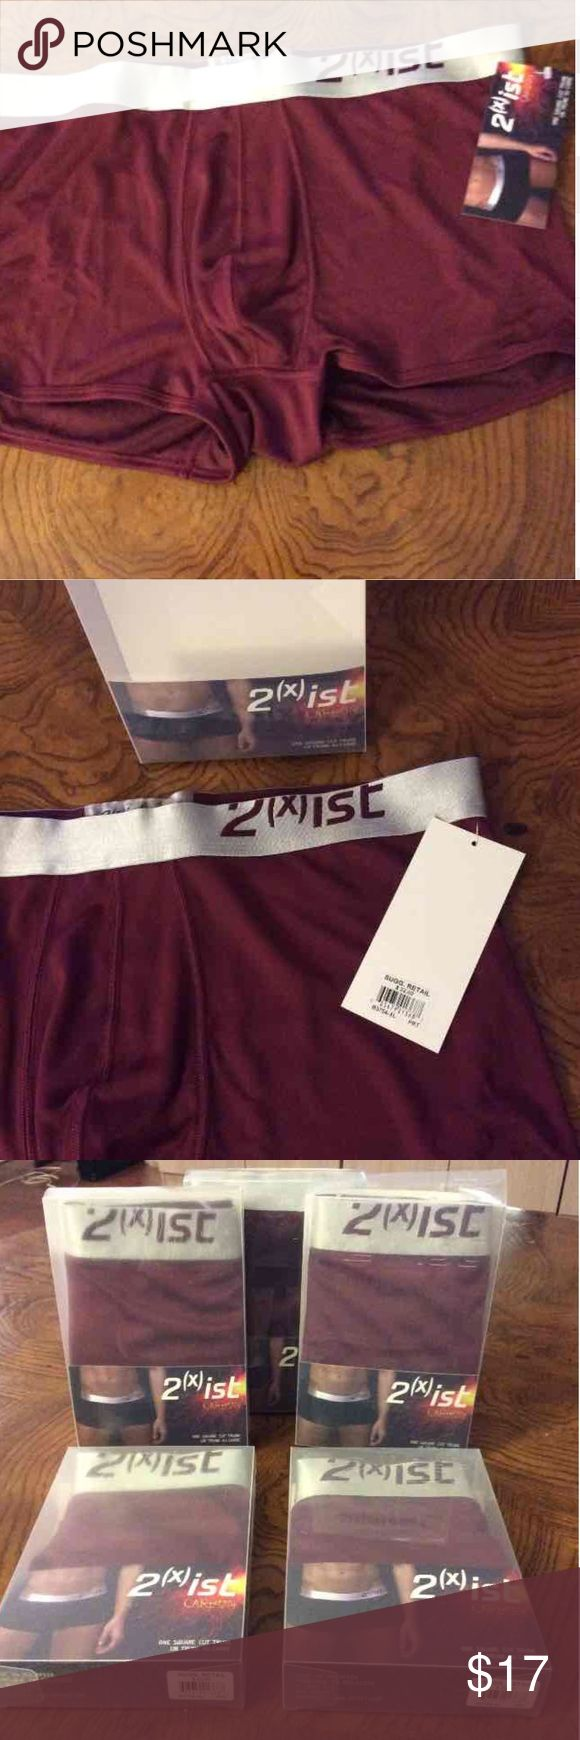 2xist men's square trunks Size xl. Brand new in box. Never worn. Maroon color. $22 each retail 2xist Underwear & Socks Boxer Briefs